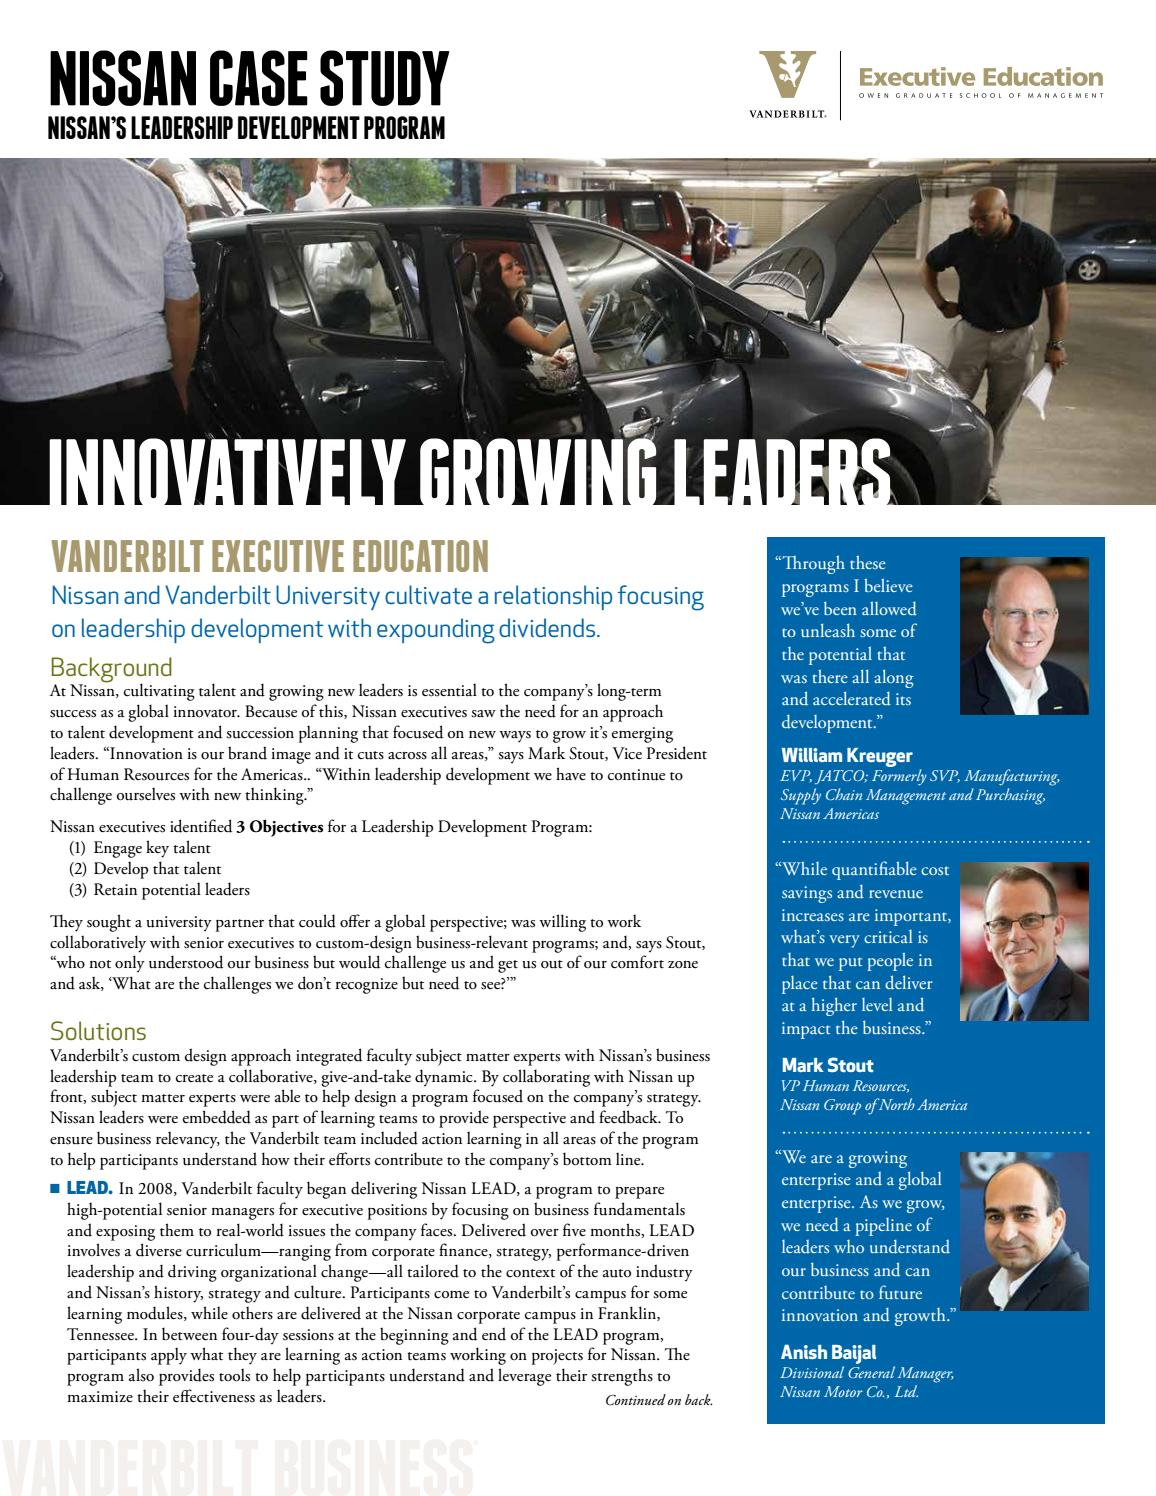 management growing leaders study case The report features case studies with two local governments—the city of sunnyvale, california and hennepin county, minnesota, and one state government, tennessee—whose leaders are committed to creating opportunities for employees to grow and thrive.